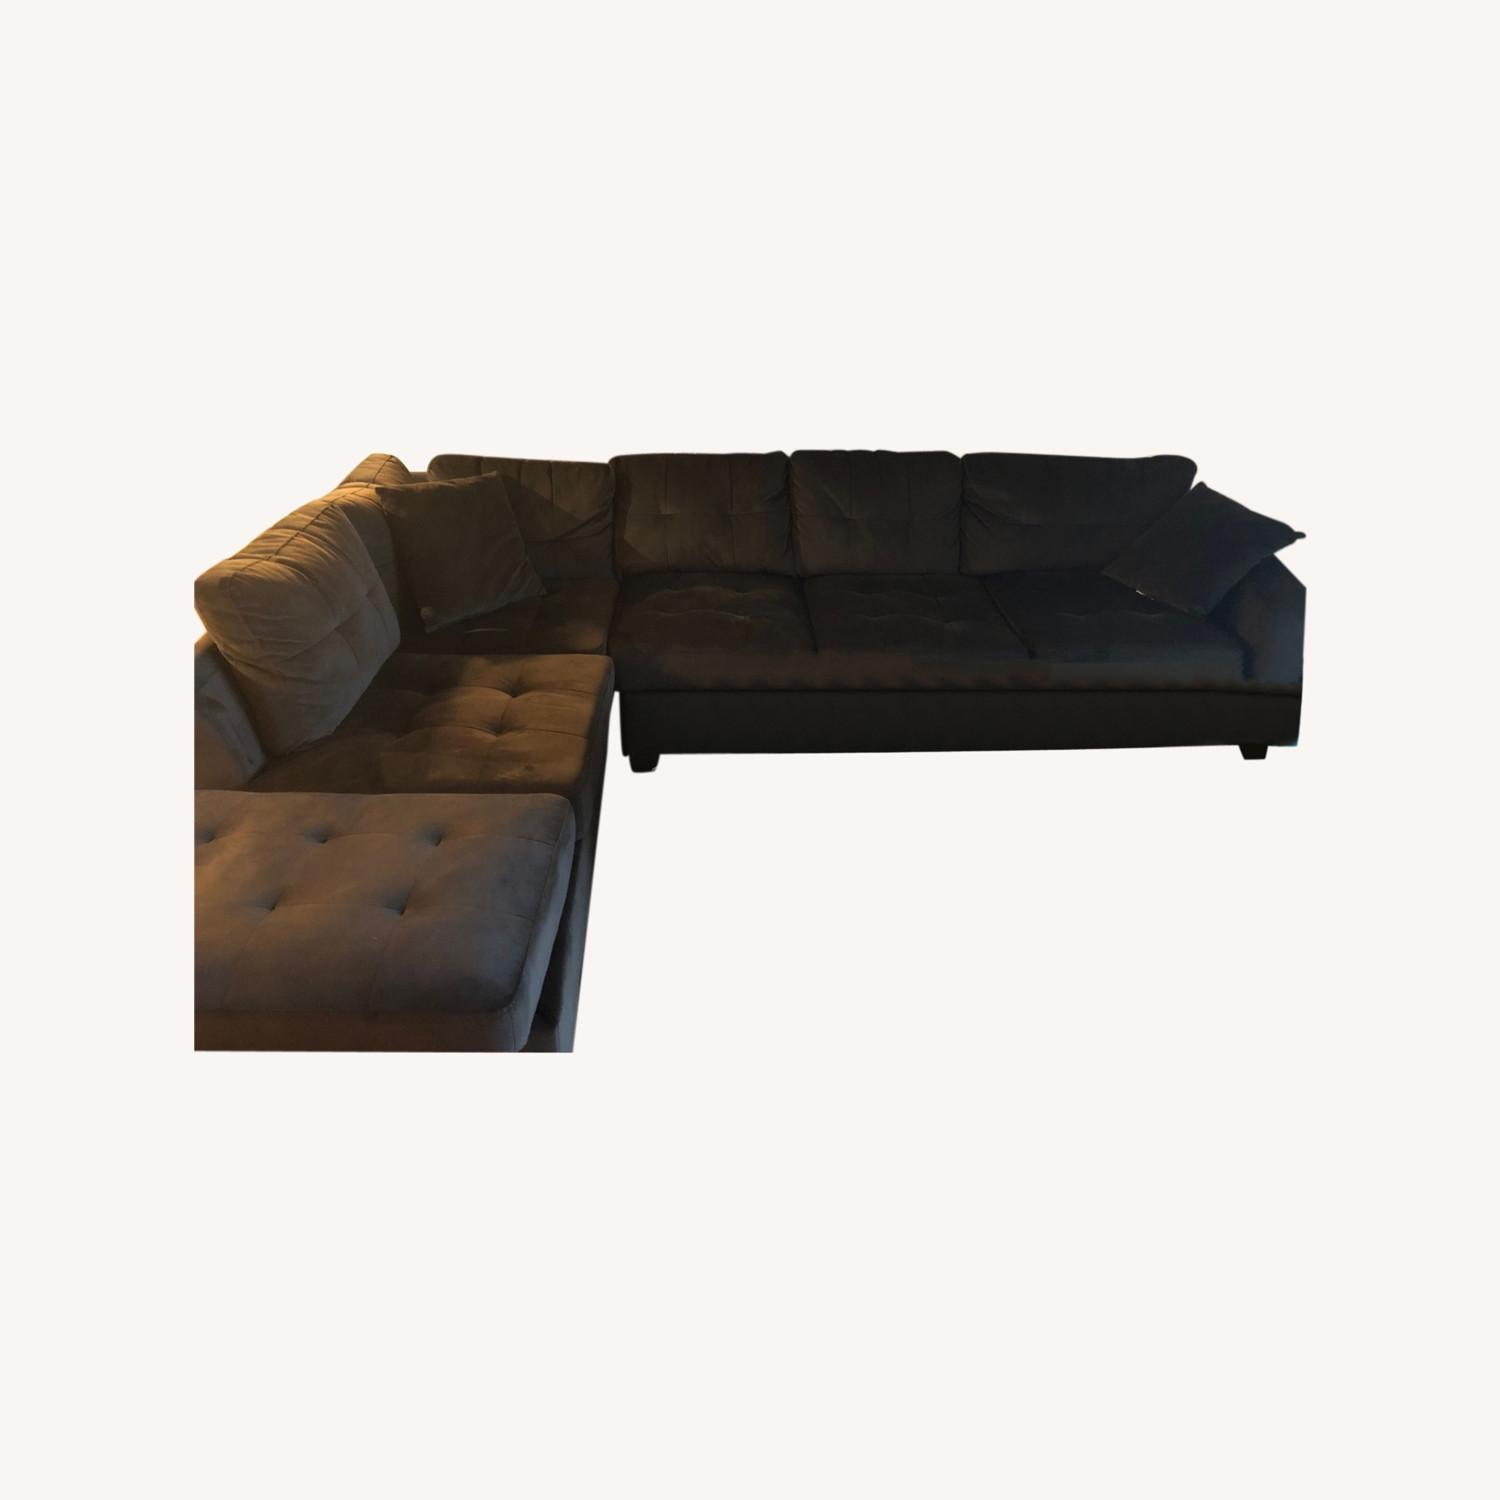 Wayfair 2 Piece Sectional Couch - image-0